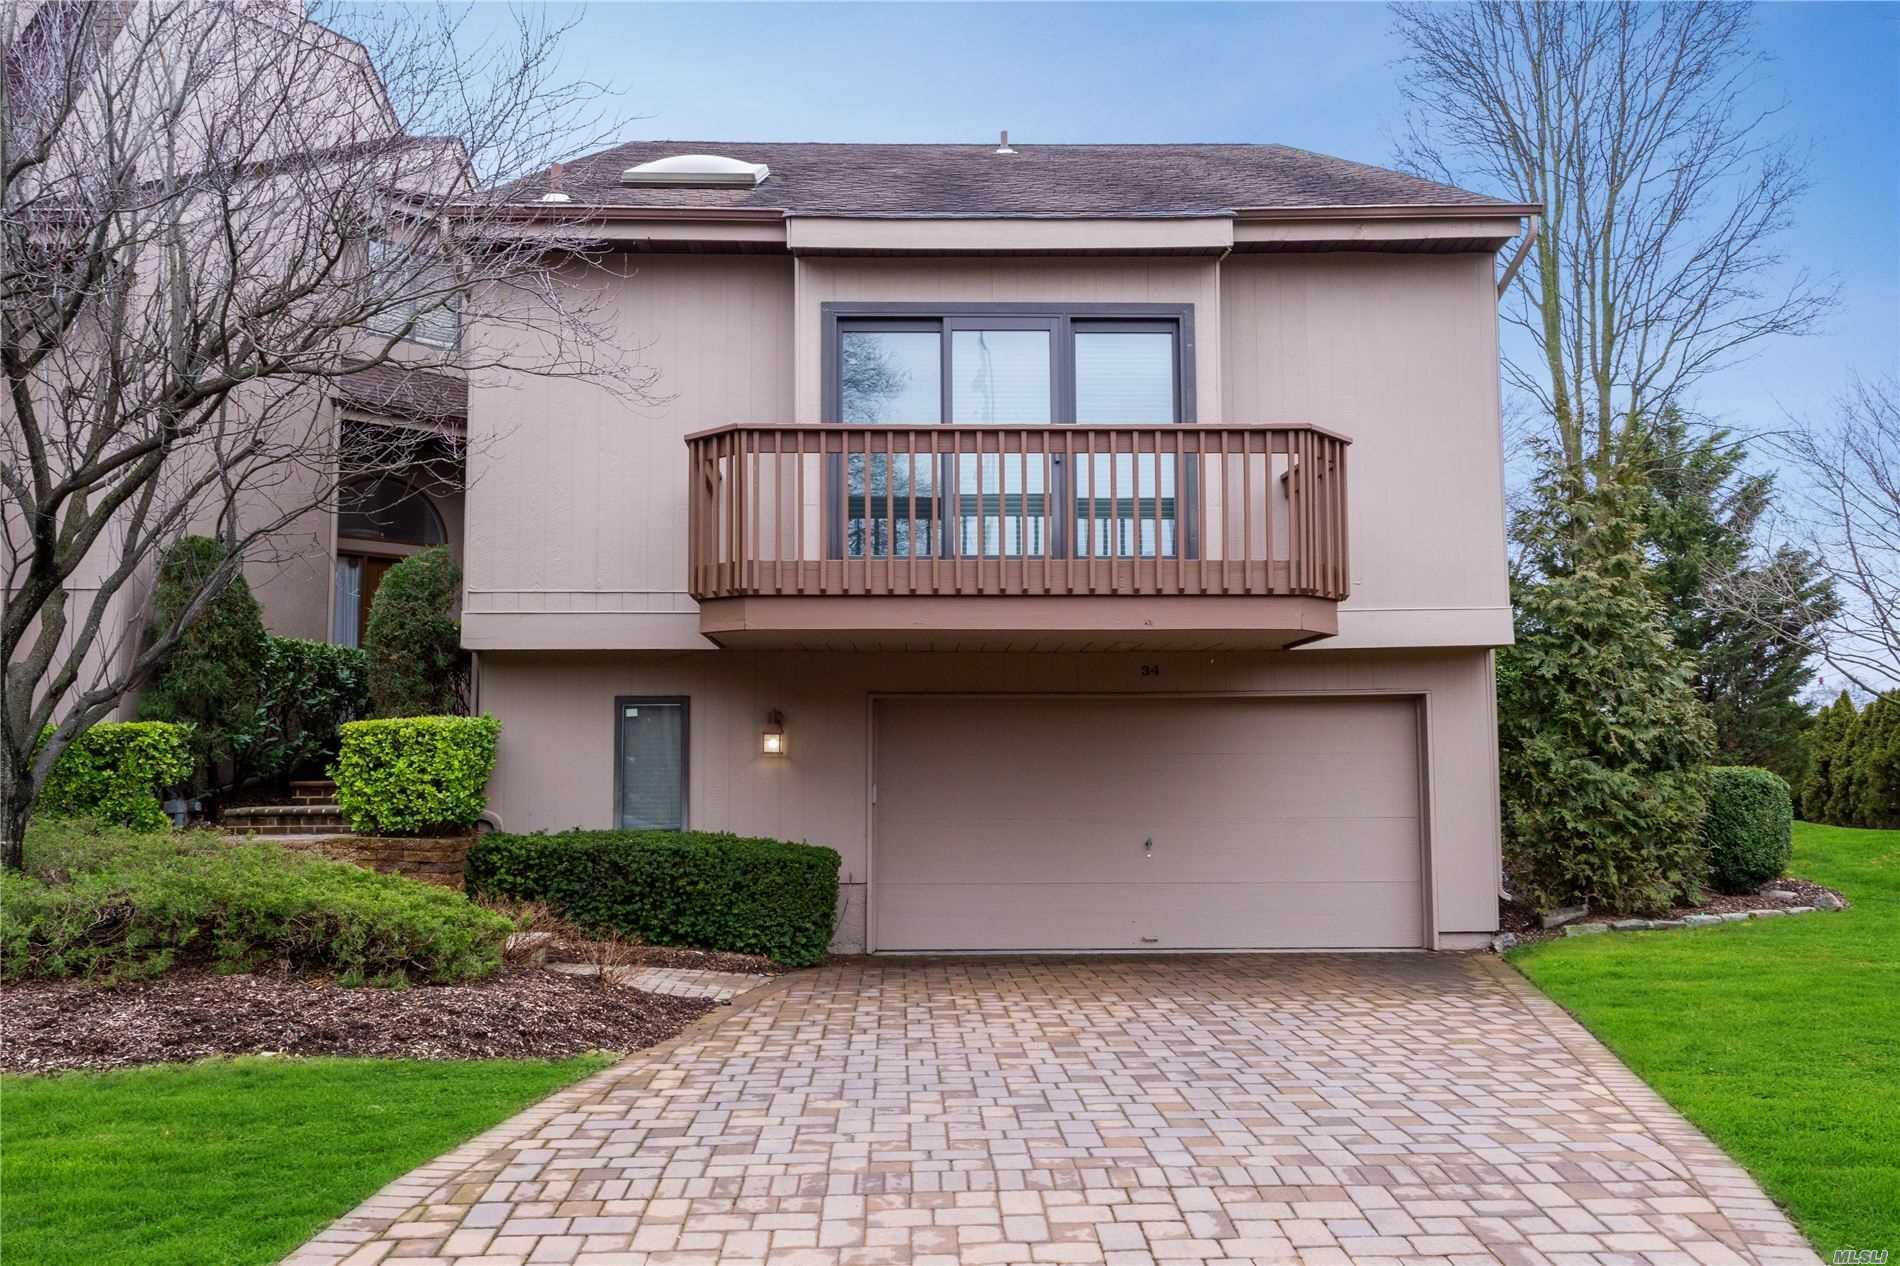 34 Clubside Drive, Woodmere, NY 11598 - MLS#: 3110436